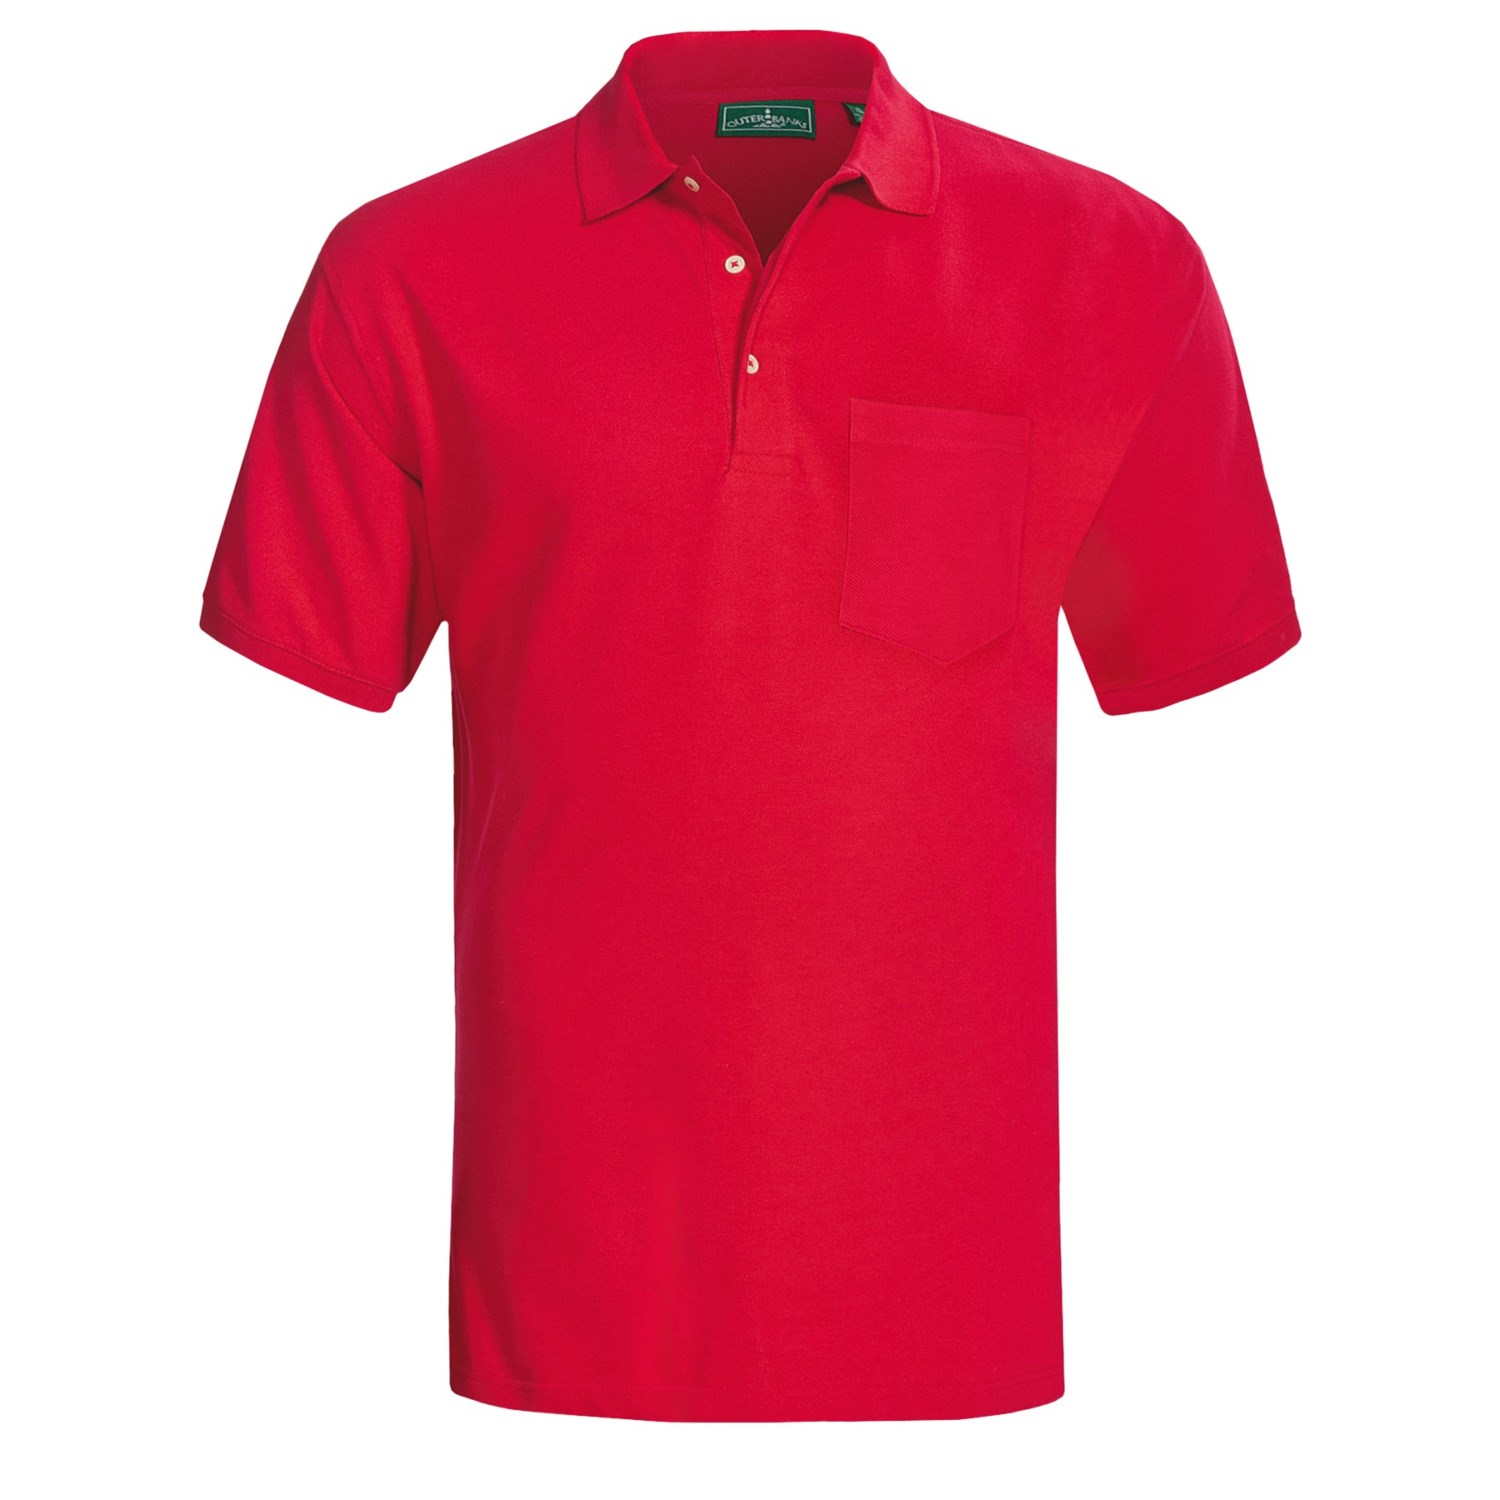 Mens polo t shirts with pockets for Polo t shirts with pocket online